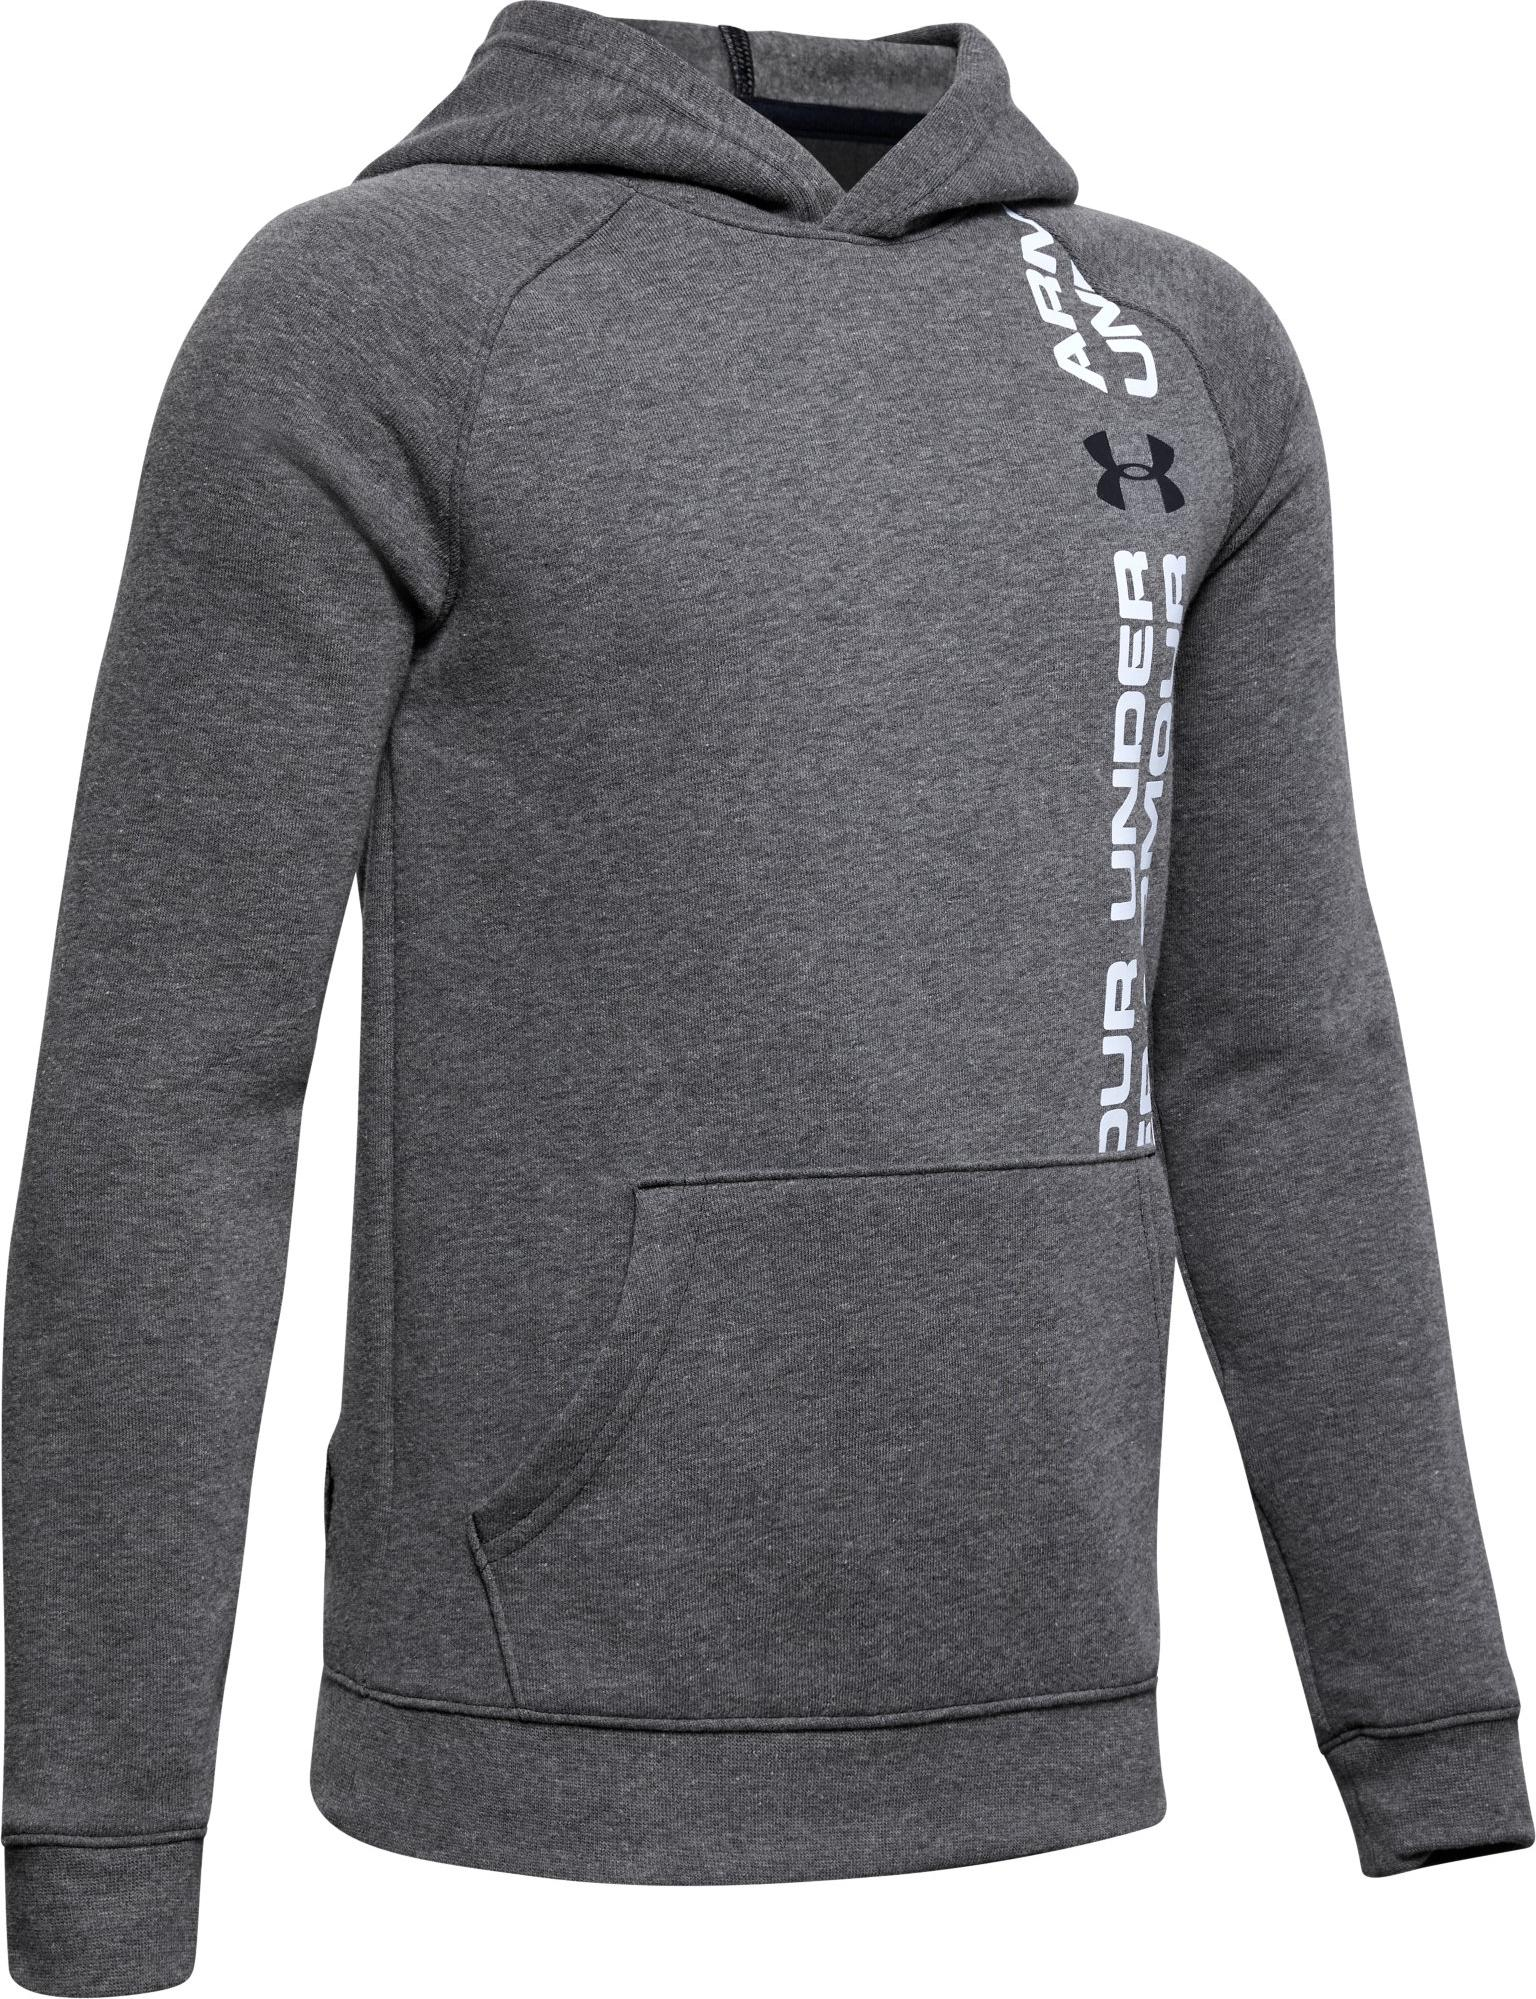 Mikina s kapucňou Under Armour Rival Wordmark Hoody Y